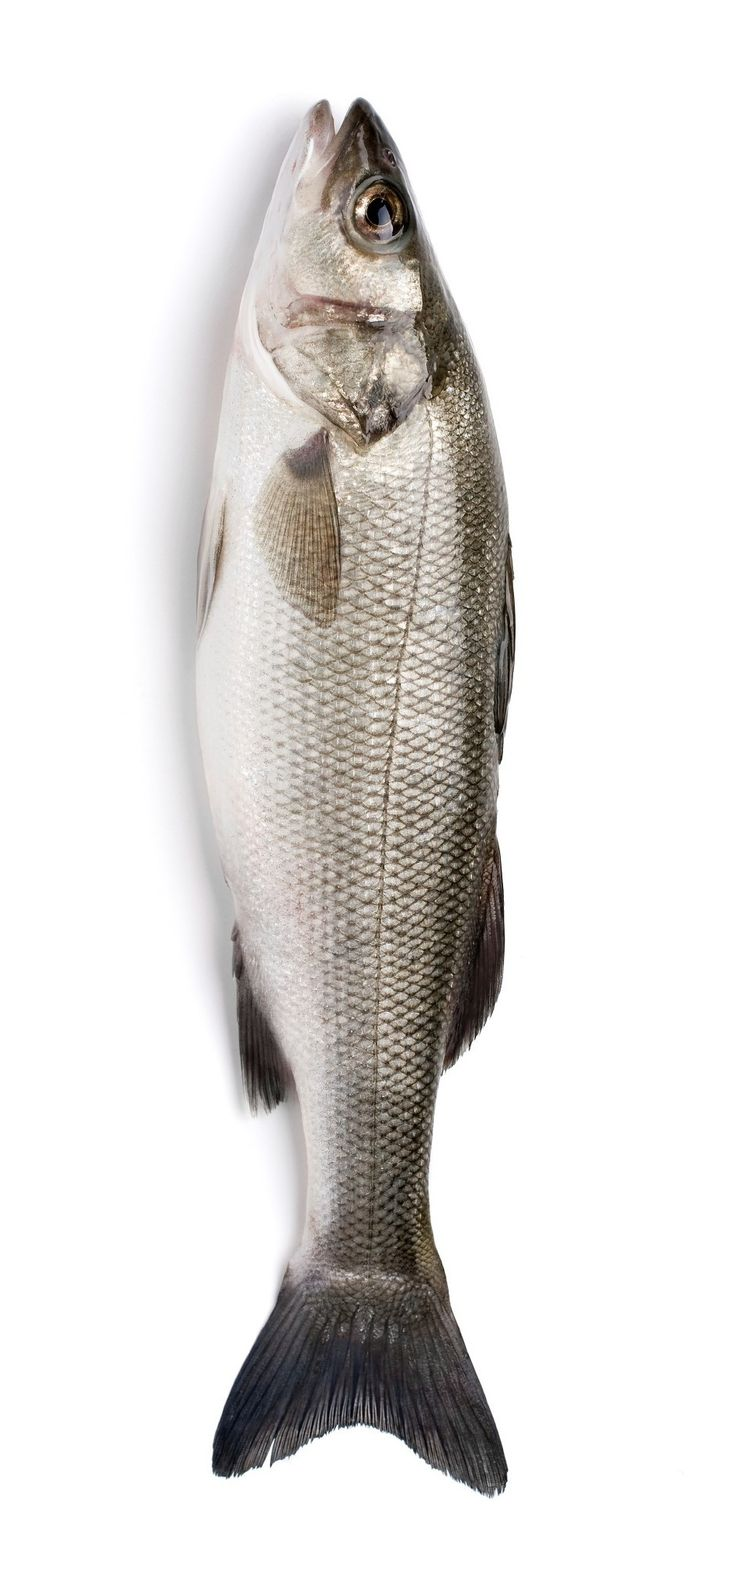 17 best images about the art of eating on pinterest for What is branzino fish